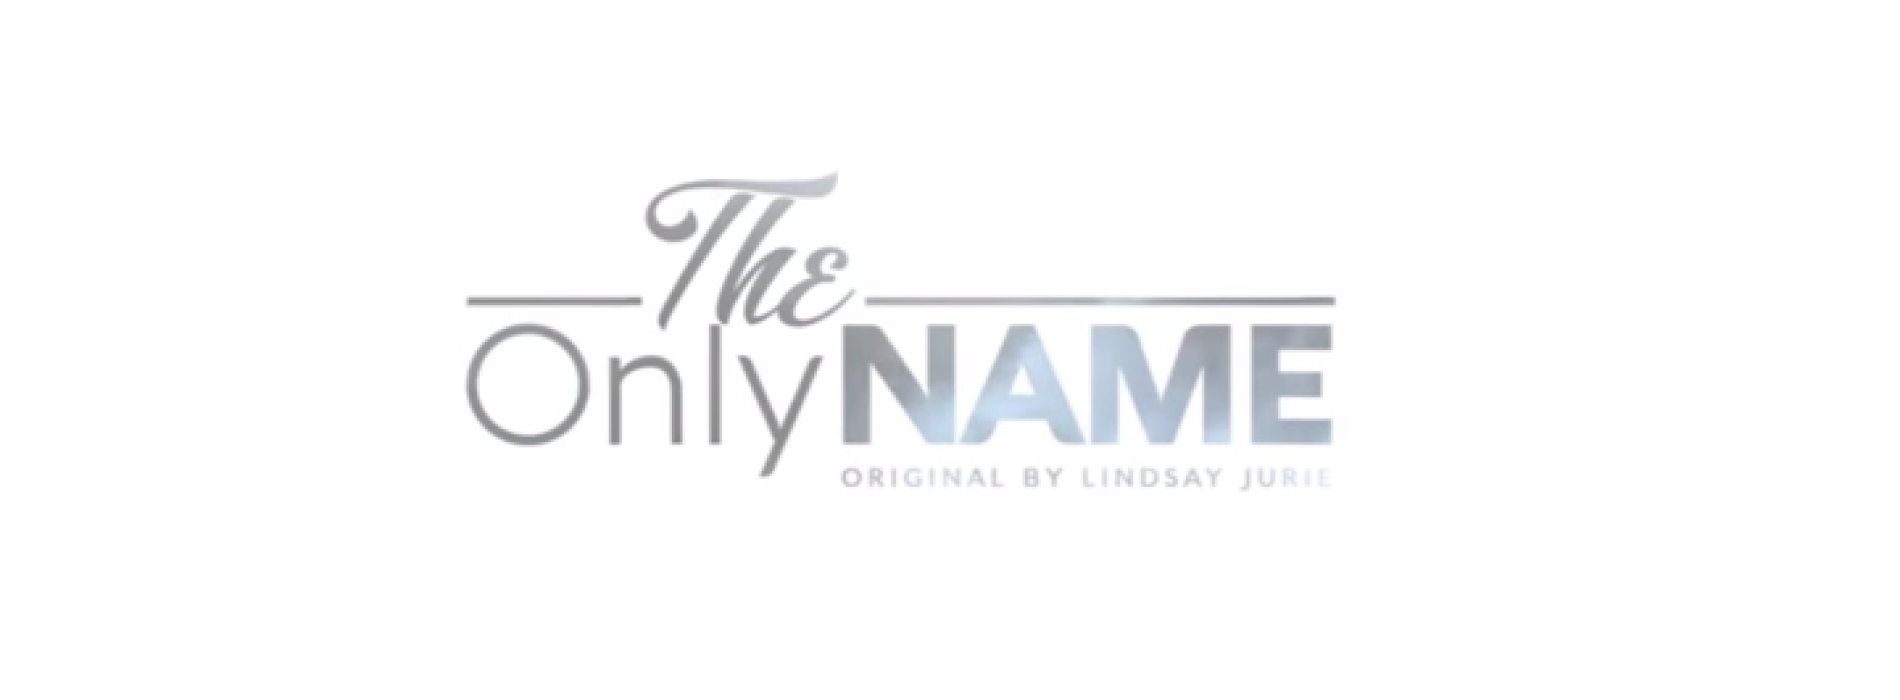 Lindsay Jurie – The Only Name